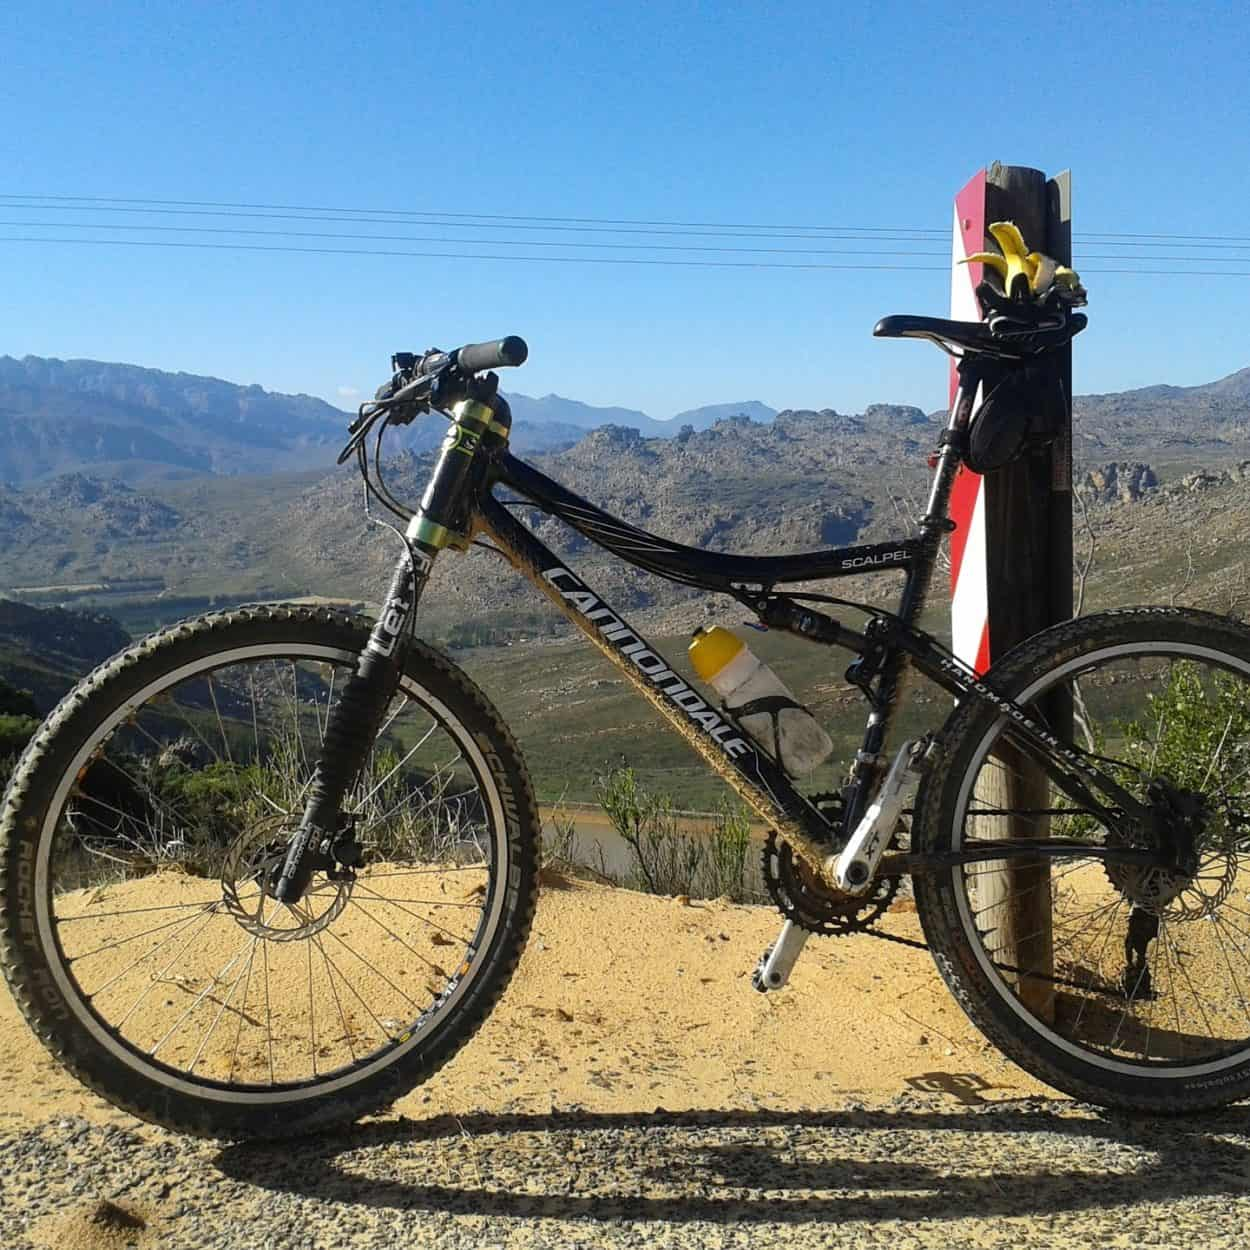 Cannondale Bike Reviews for 2021